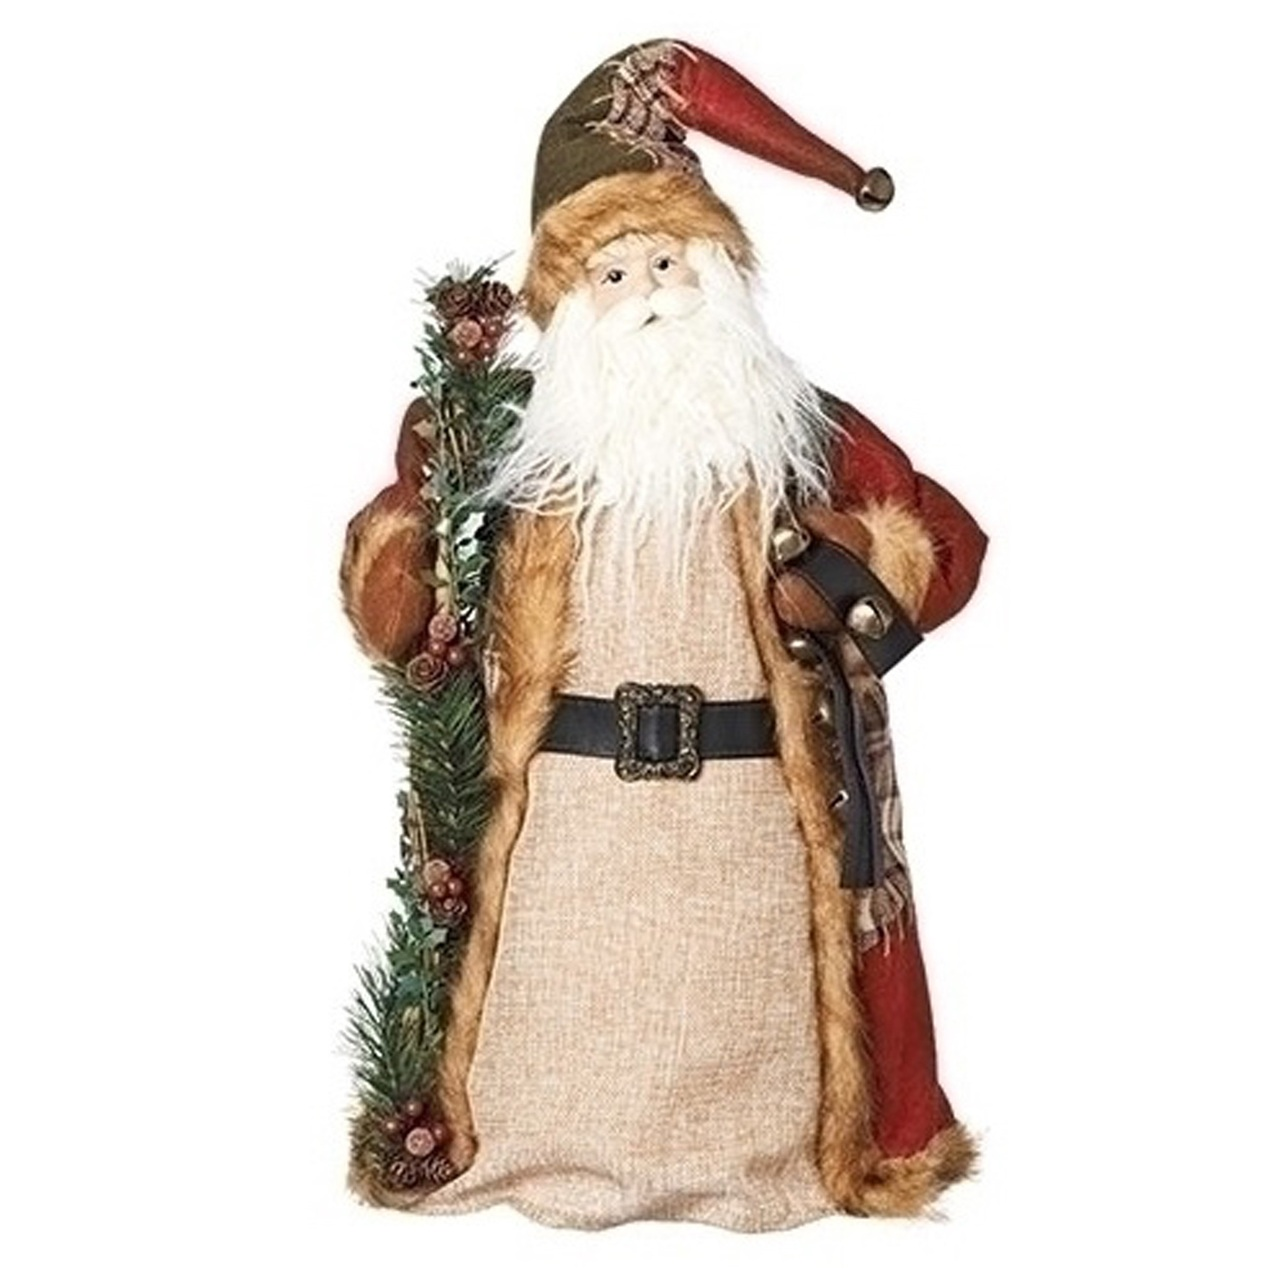 18 patchwork plaid santa claus decorative christmas tree topper or figurine 32624135